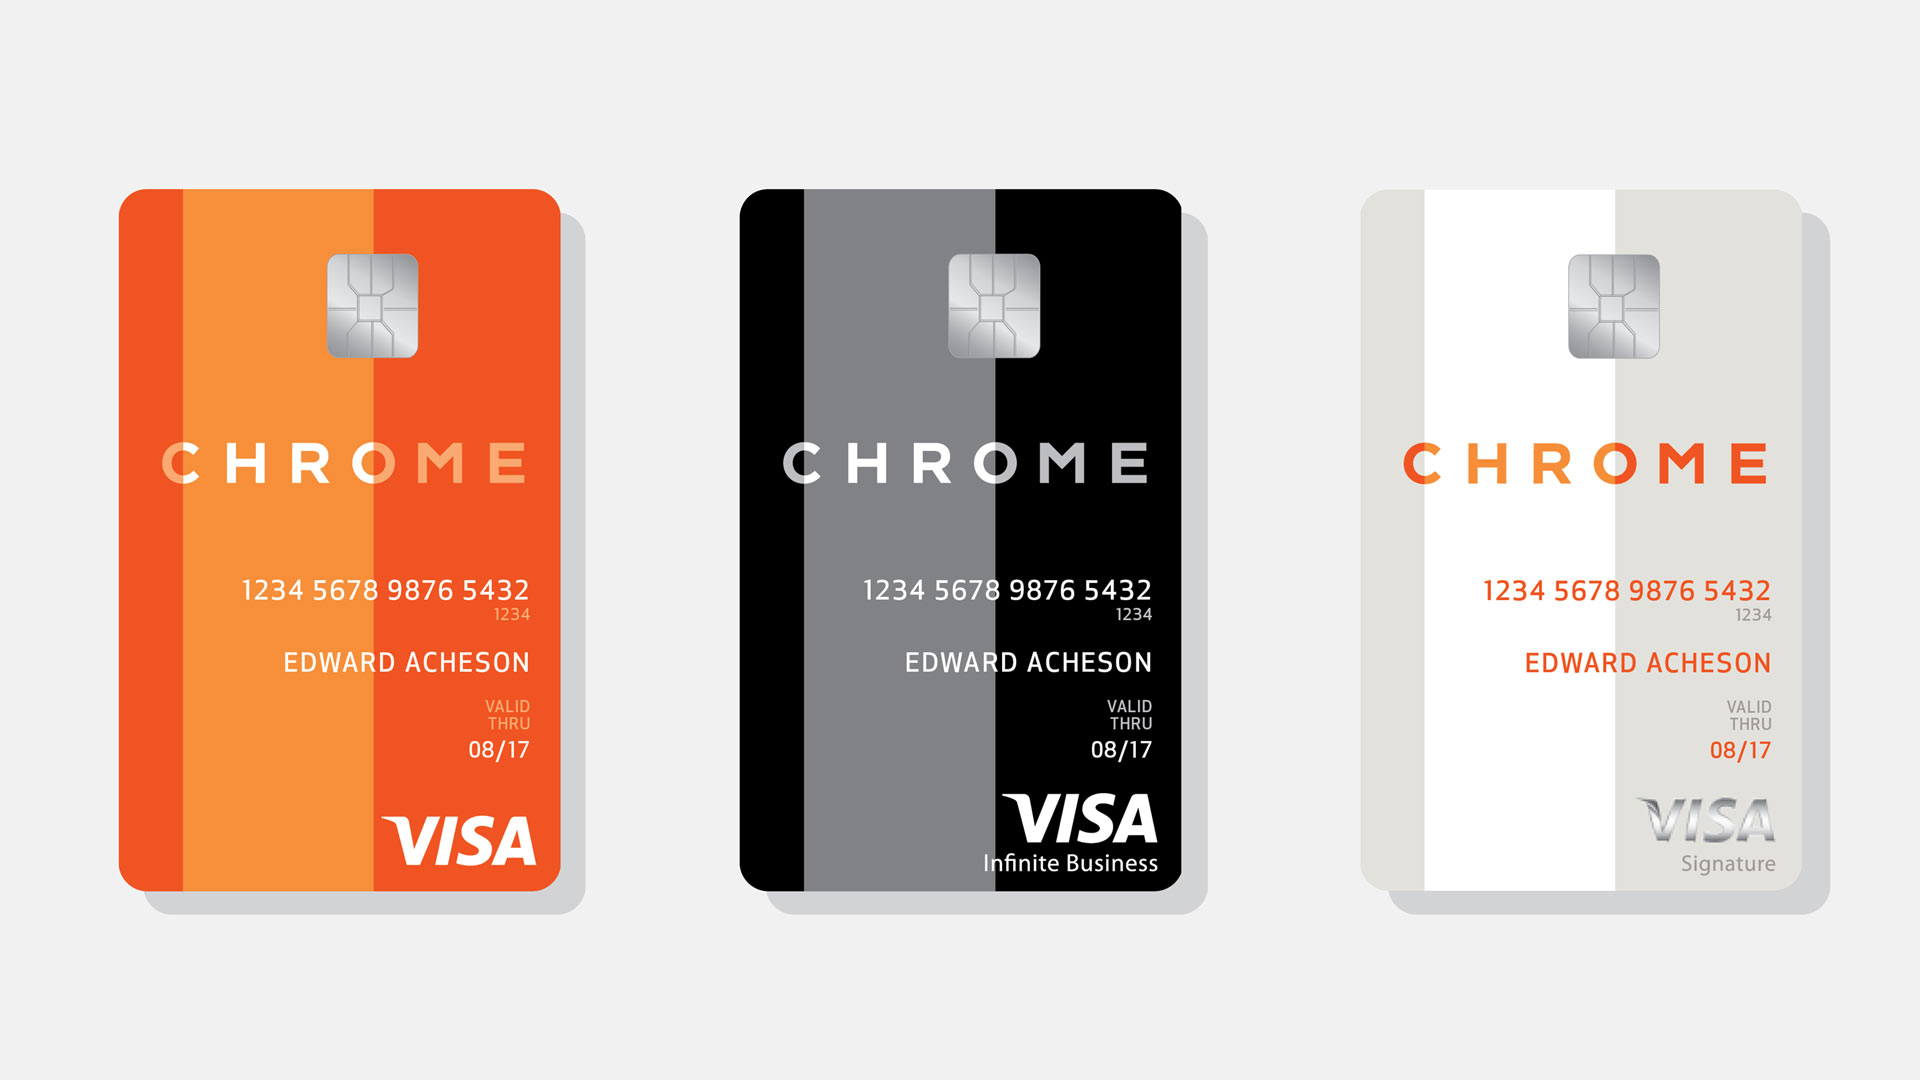 Chrome 15 visa